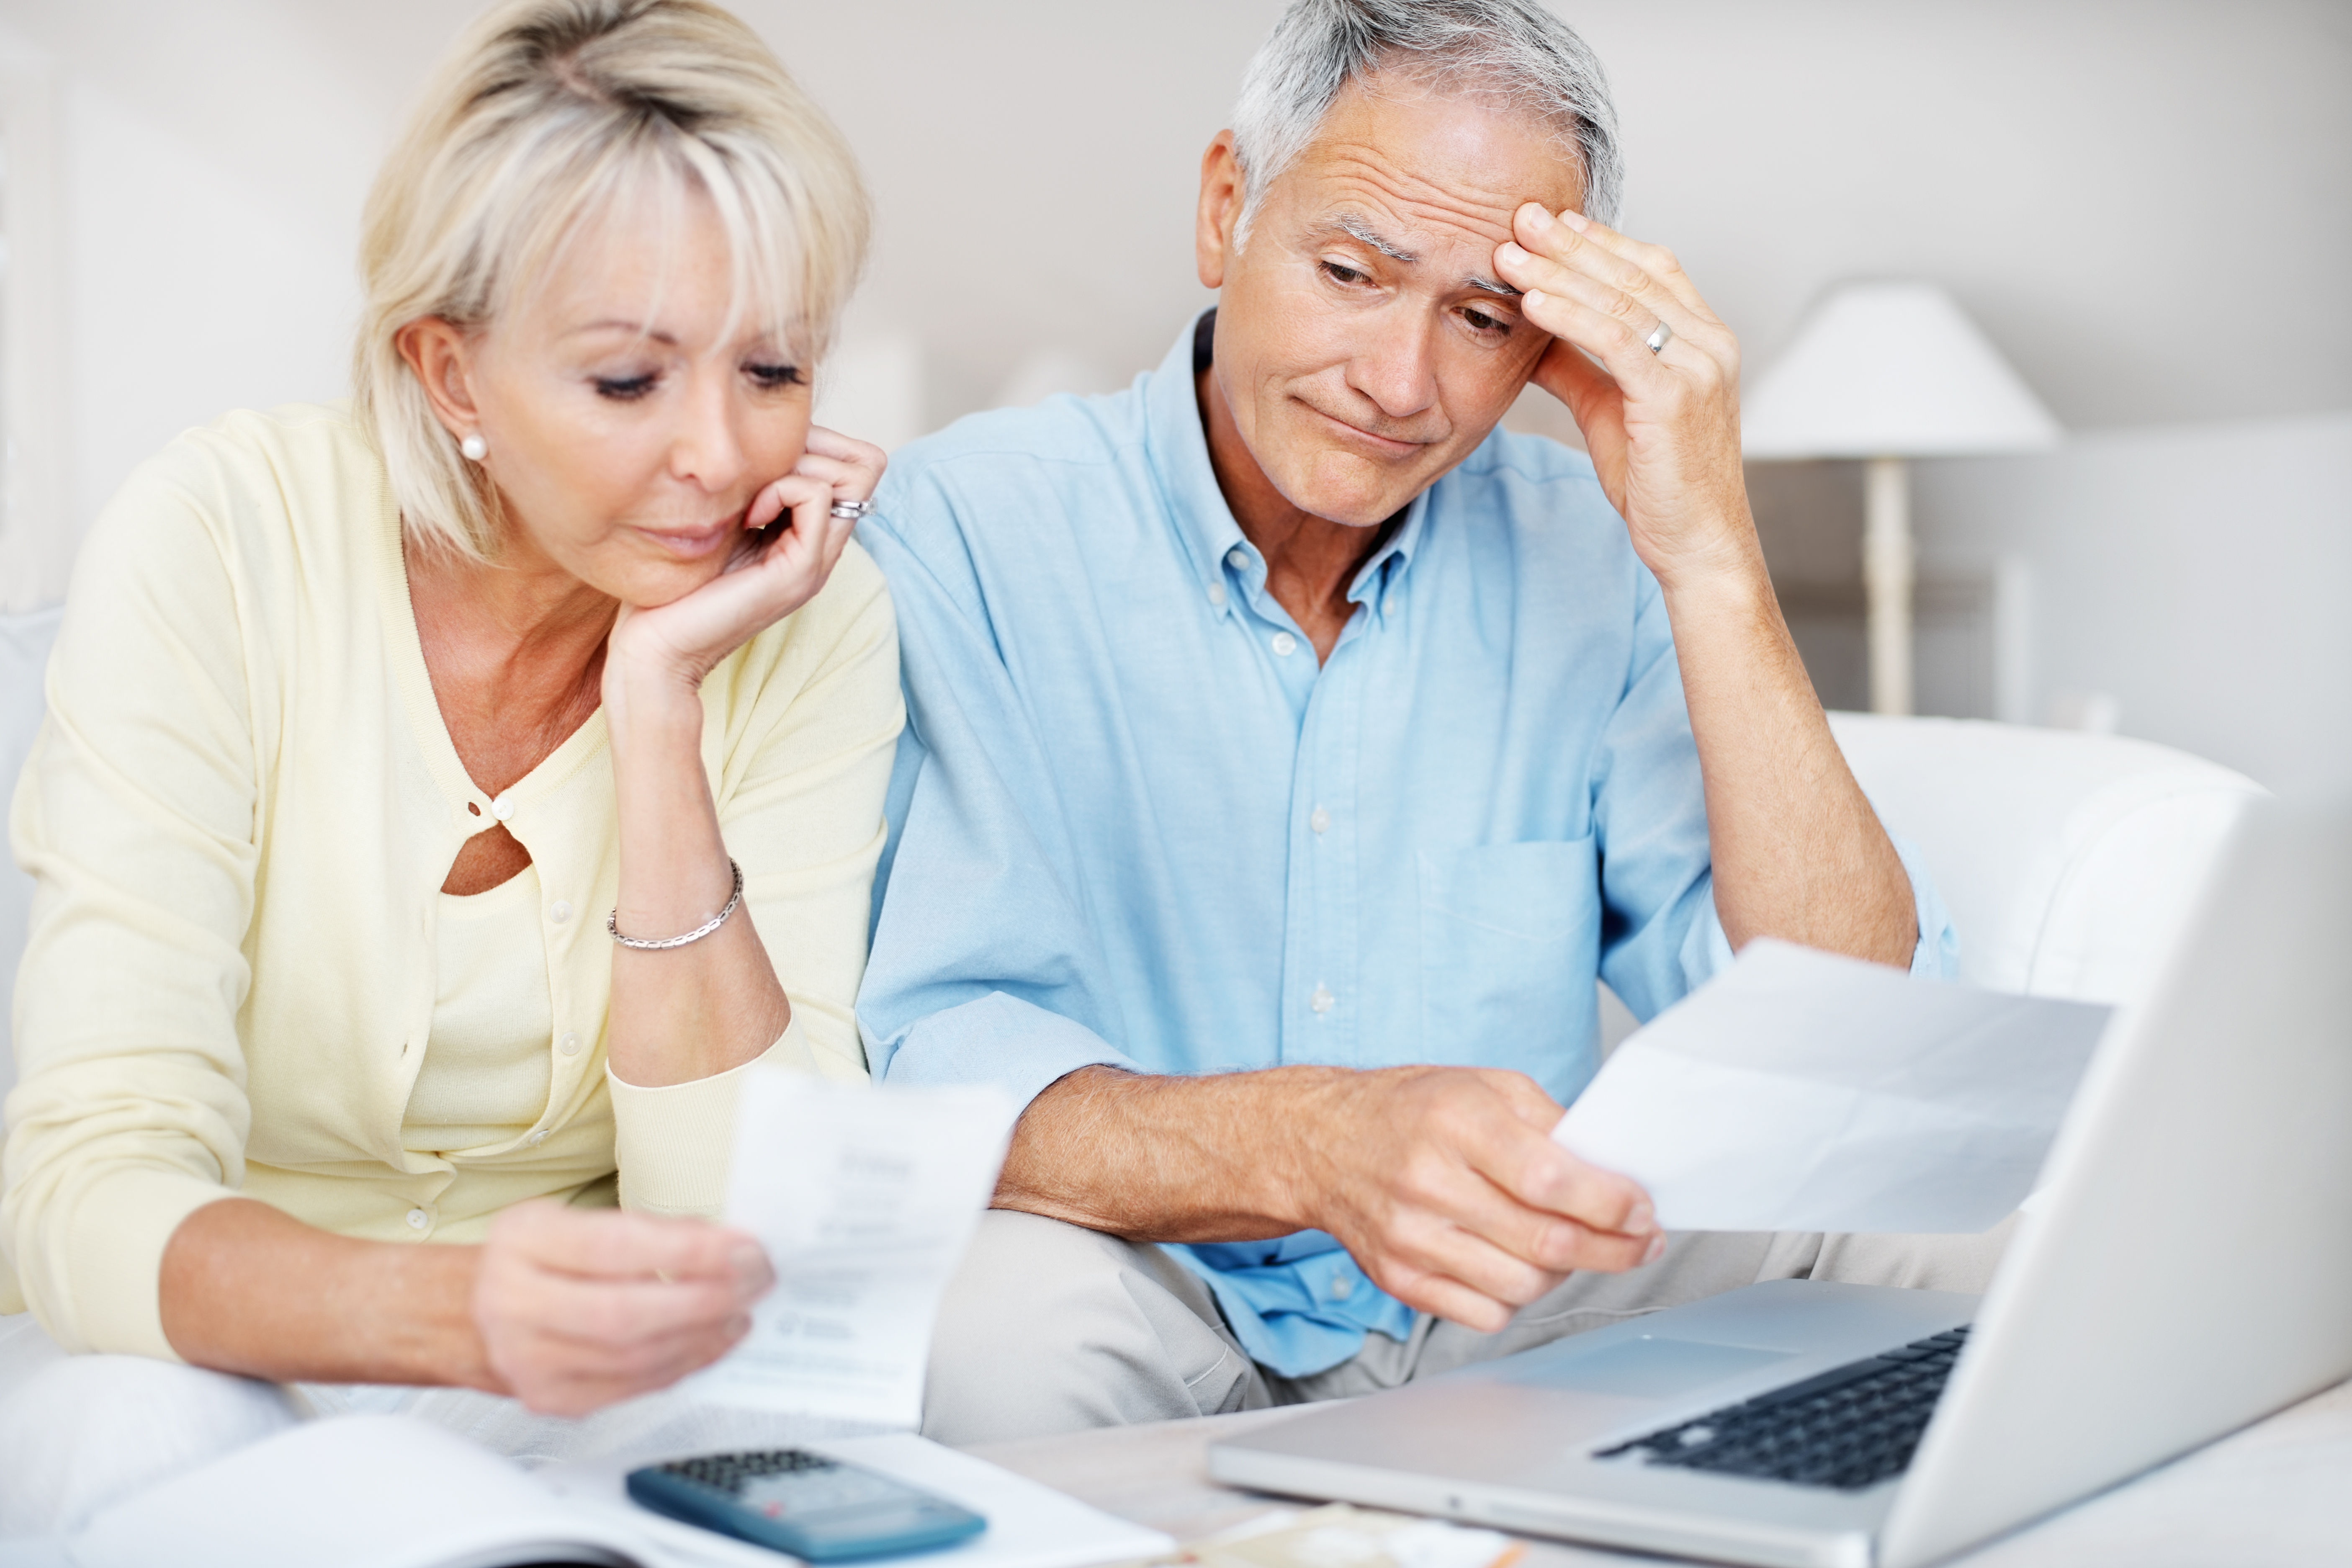 Older Americans with student loan debt are seeing a portion of their Social Security checks removed.